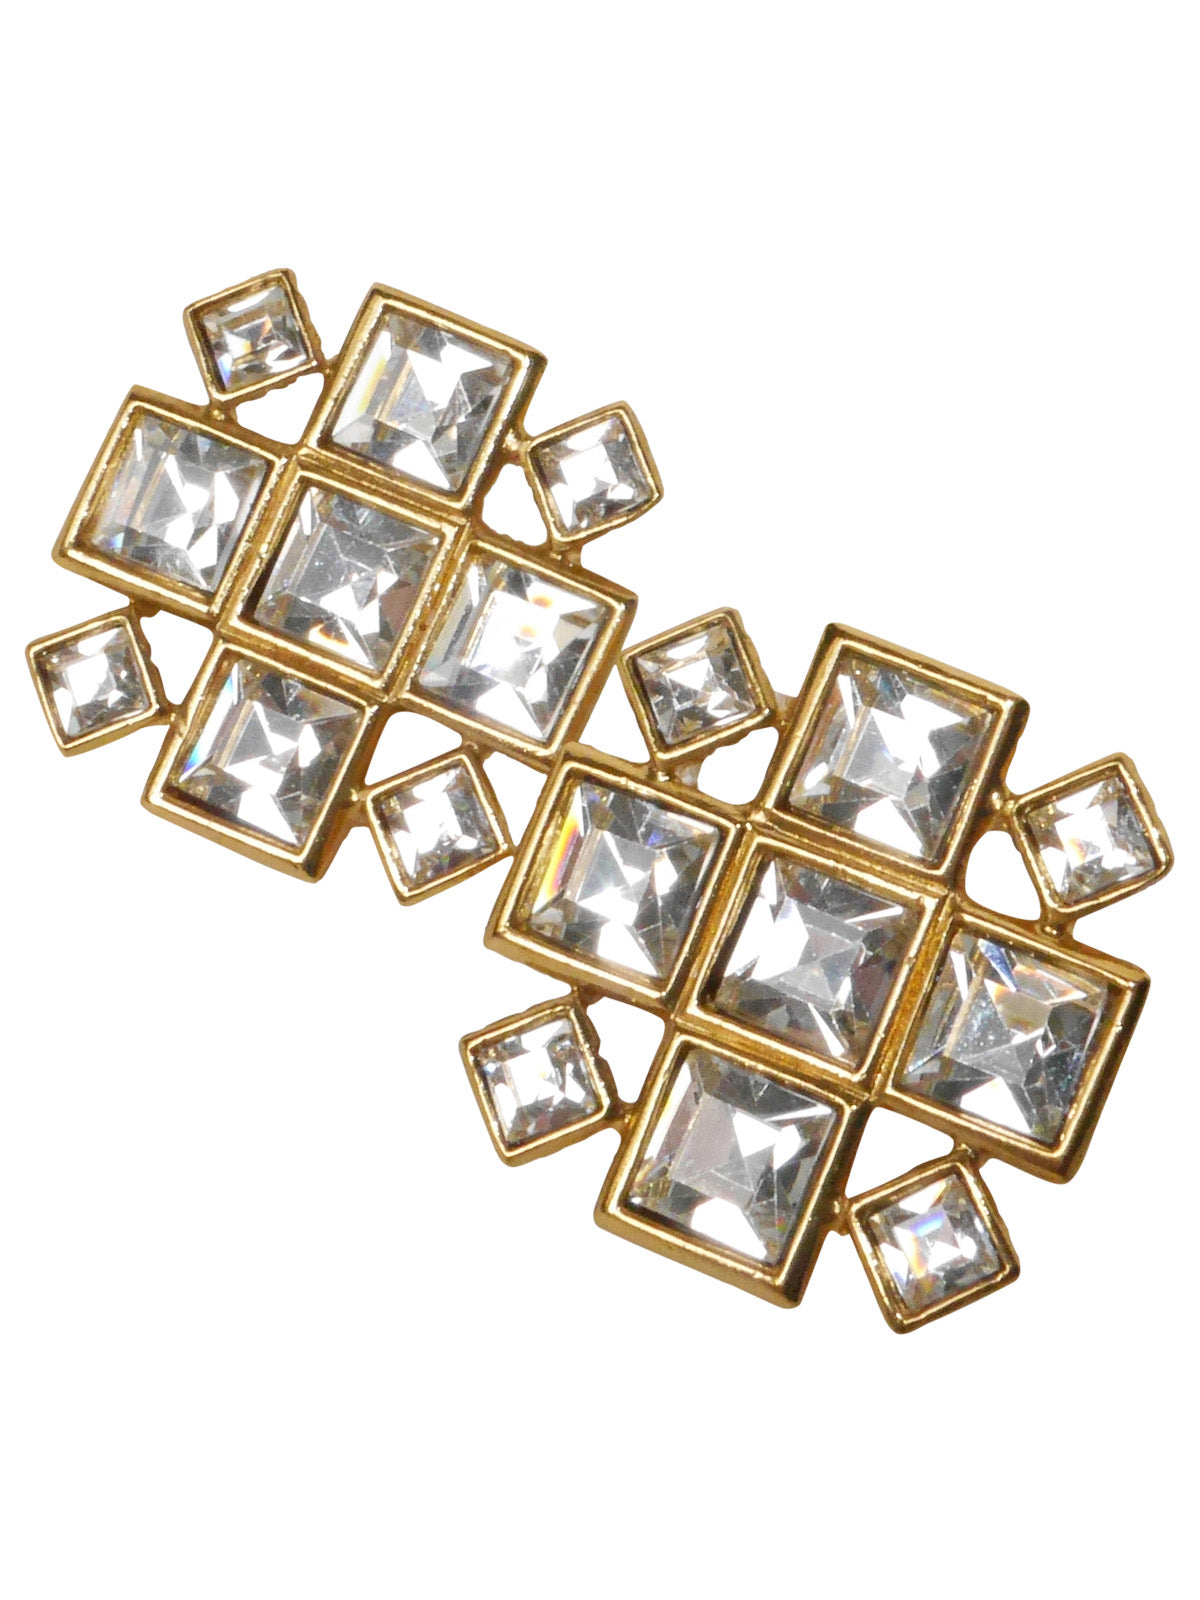 Sold - YVES SAINT LAURENT Vintage Clip-On Earrings Gold Crystal Rhinestones